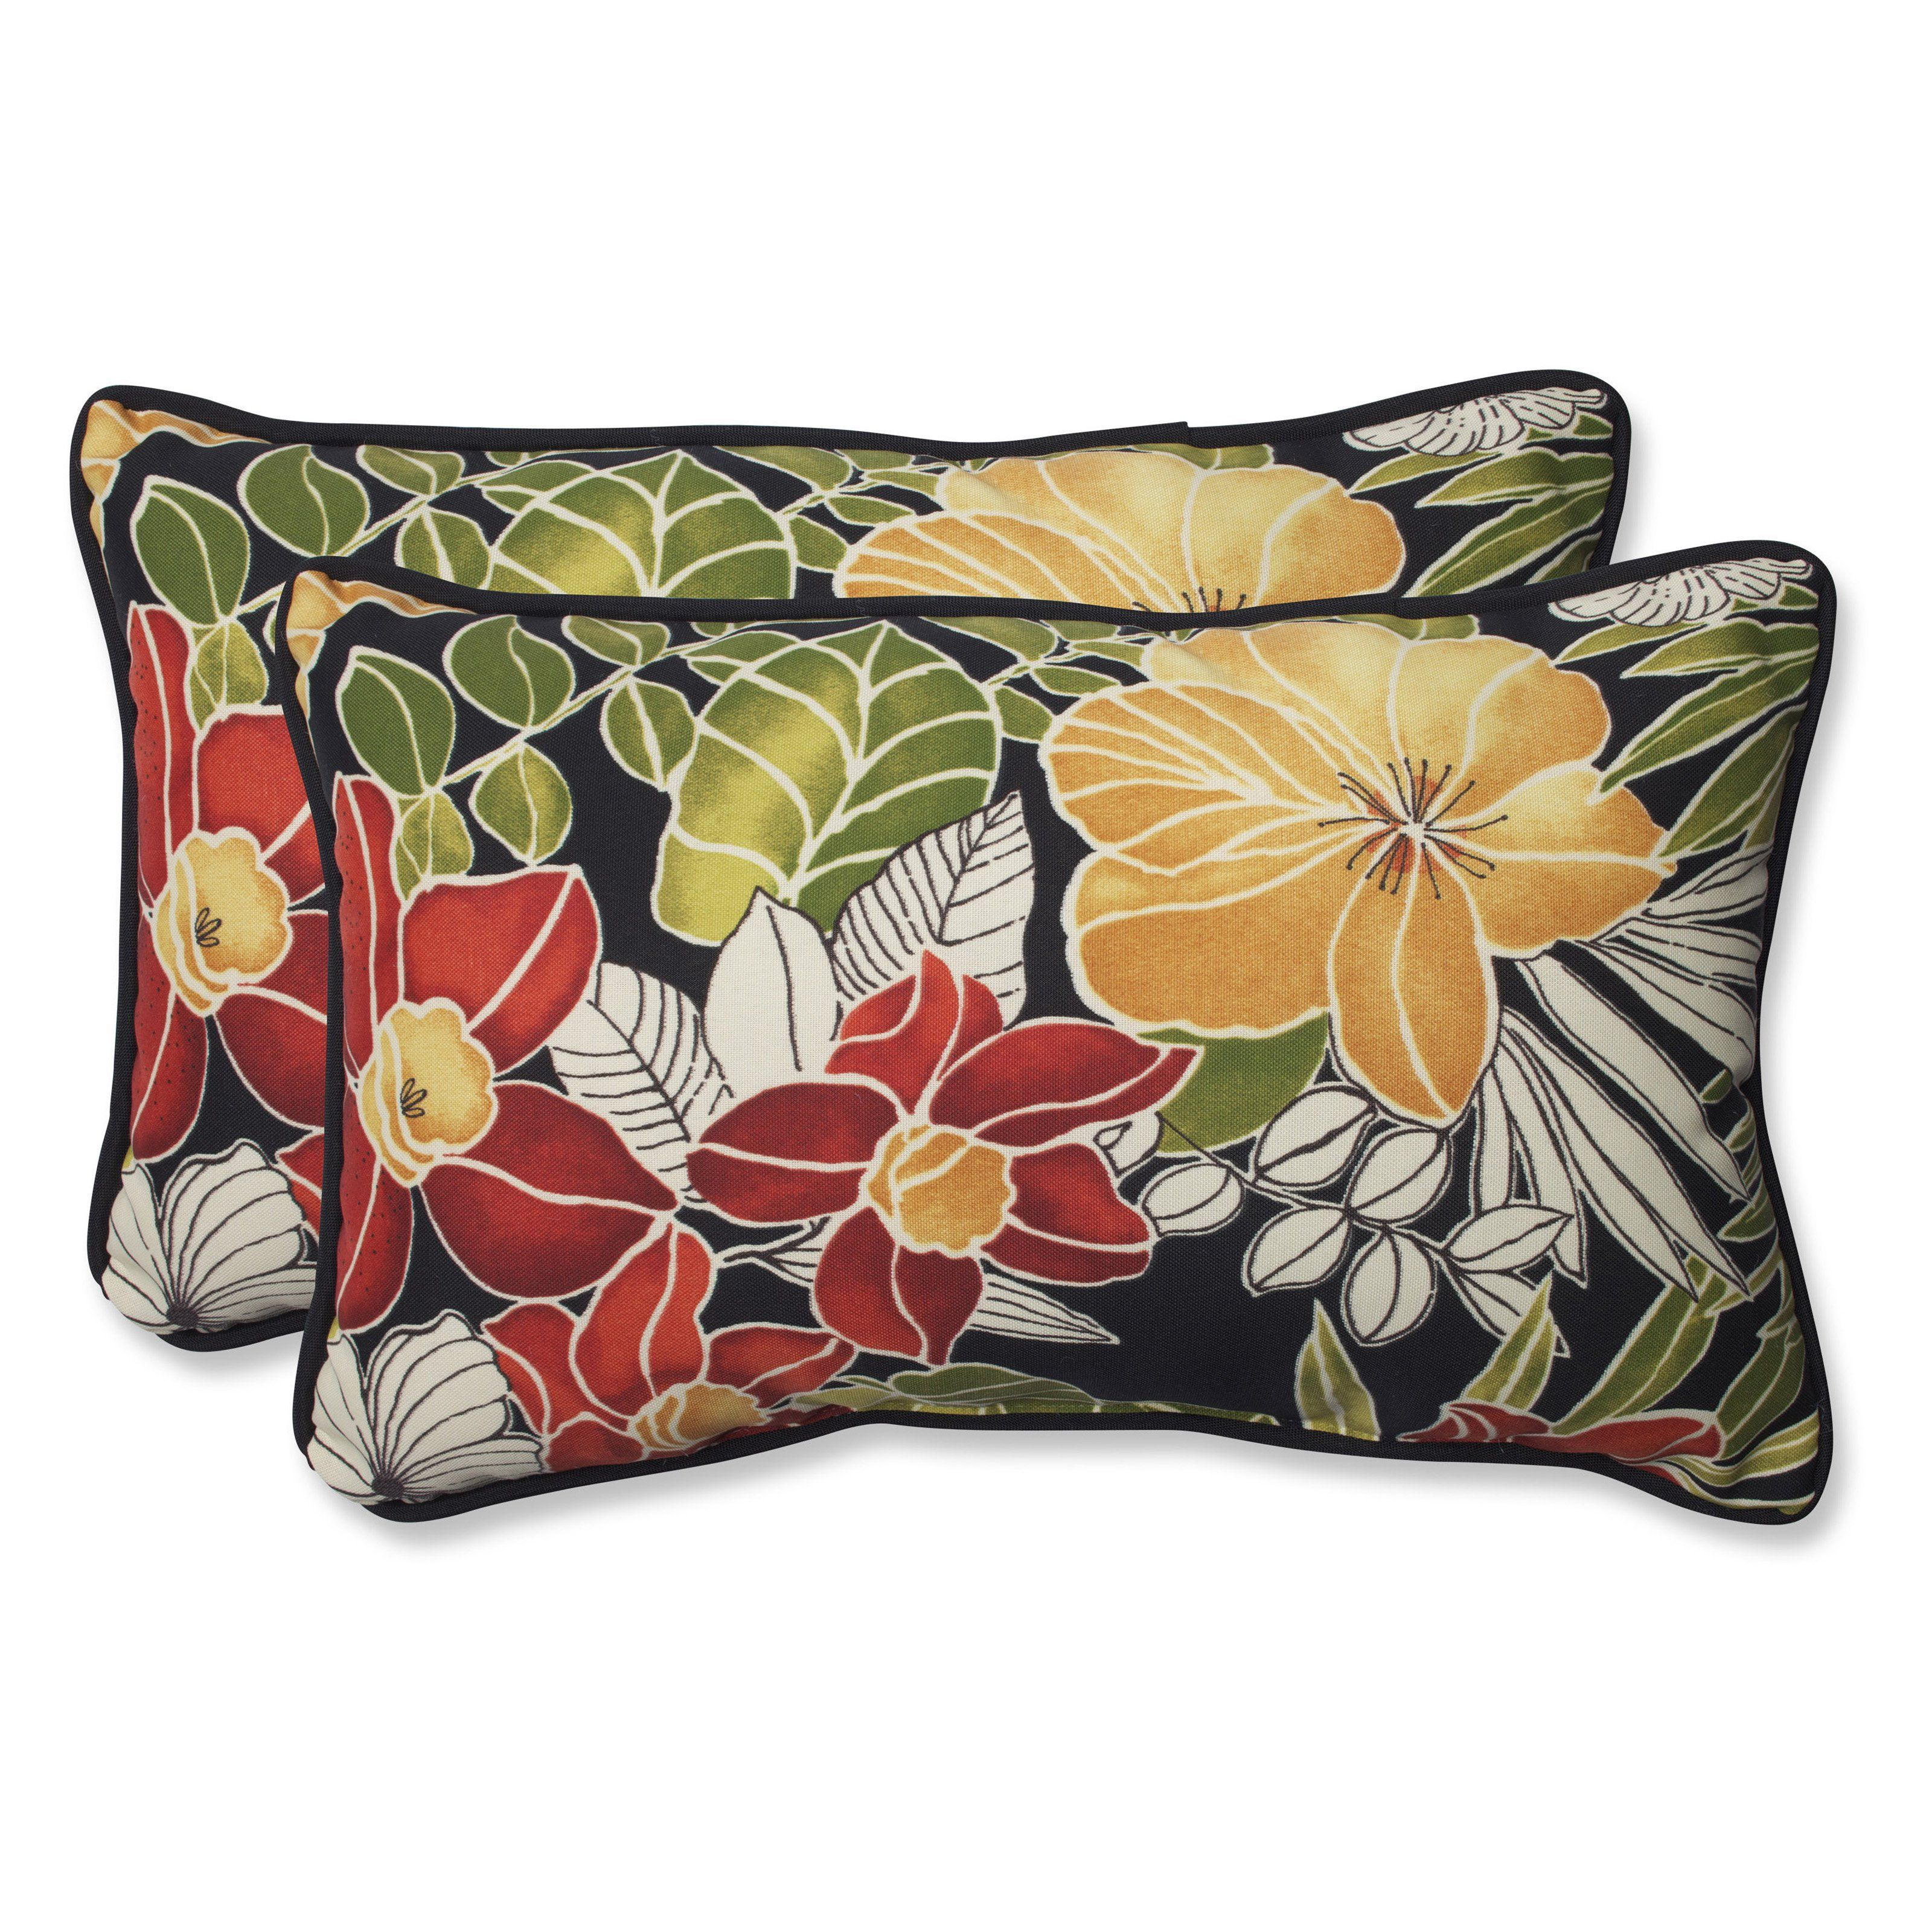 Pillow Perfect Clemens Noir 18.5 x 11 in. Rectangle Throw Pillow - Set of 2 - 560618